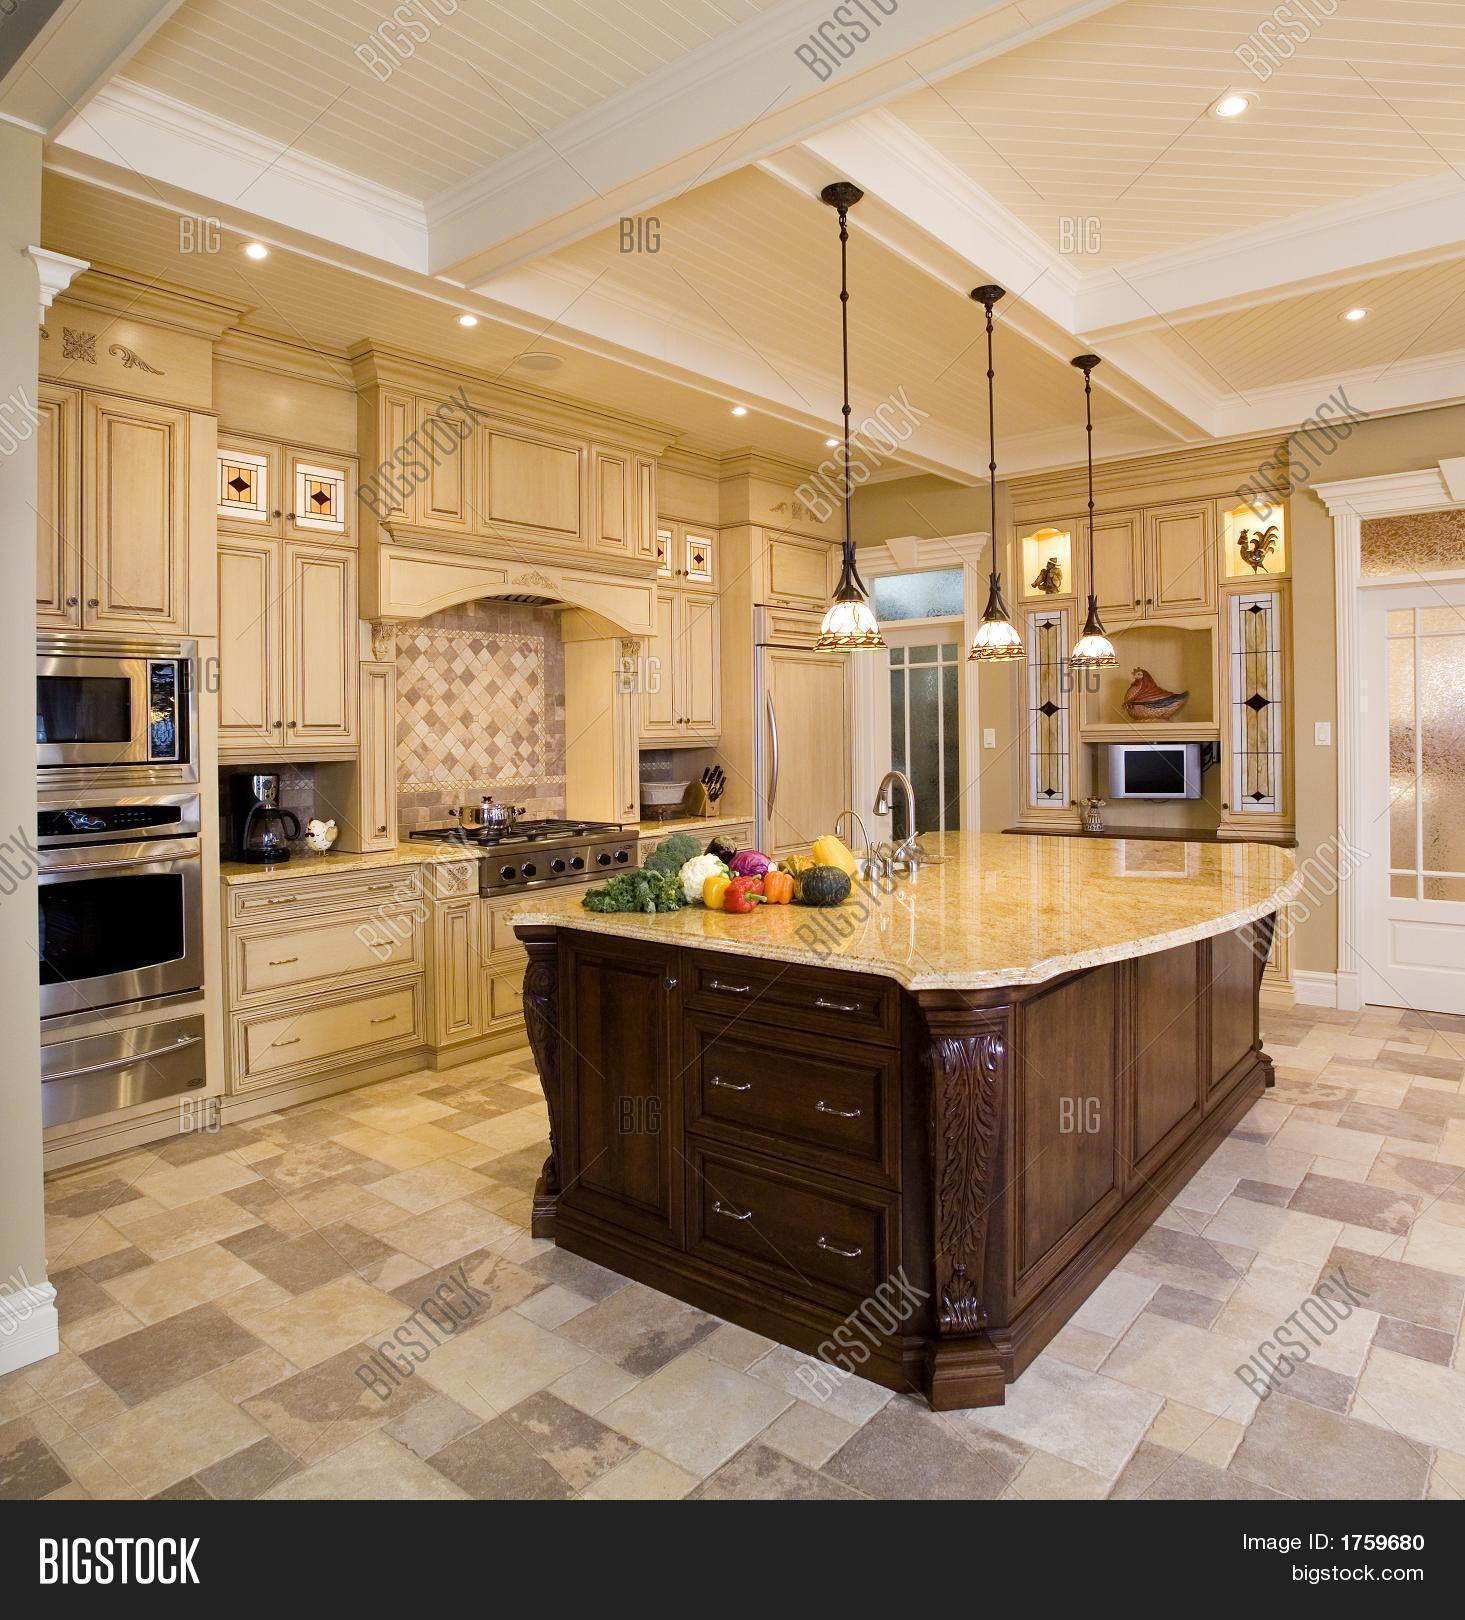 Beige kitchen large island image photo bigstock for Kitchen remodel with large island